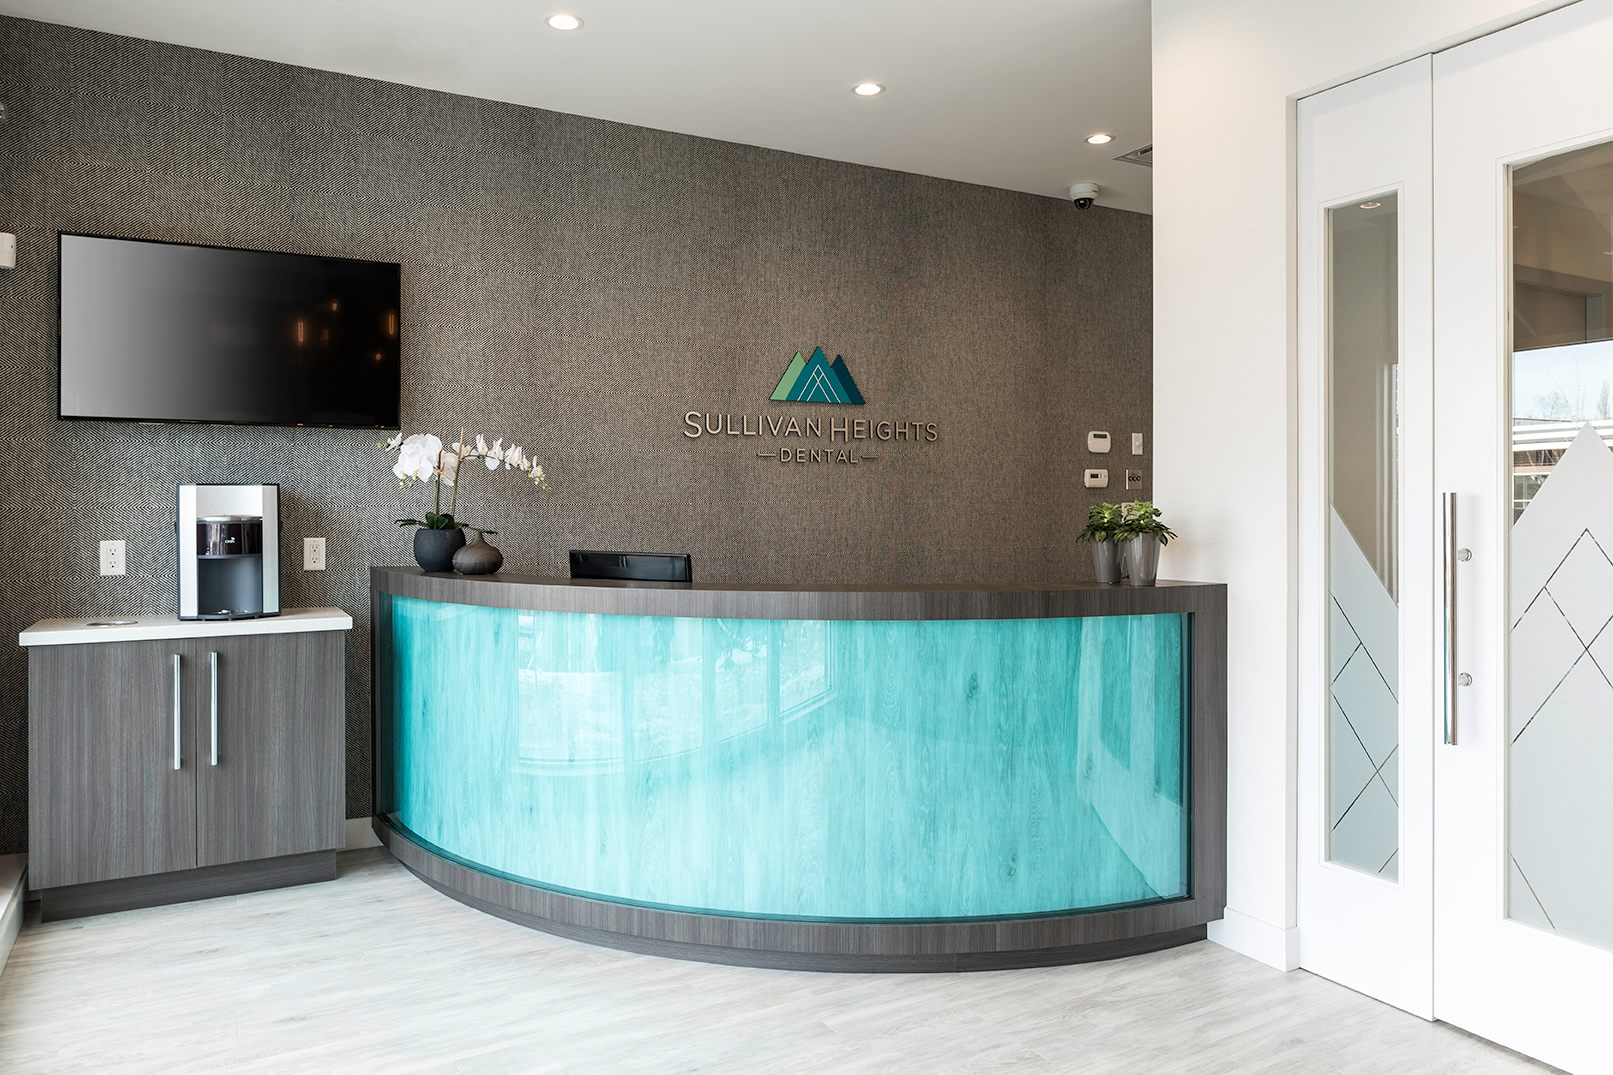 Arborlea Developments - Sullivan Heights Dental - Reception Area